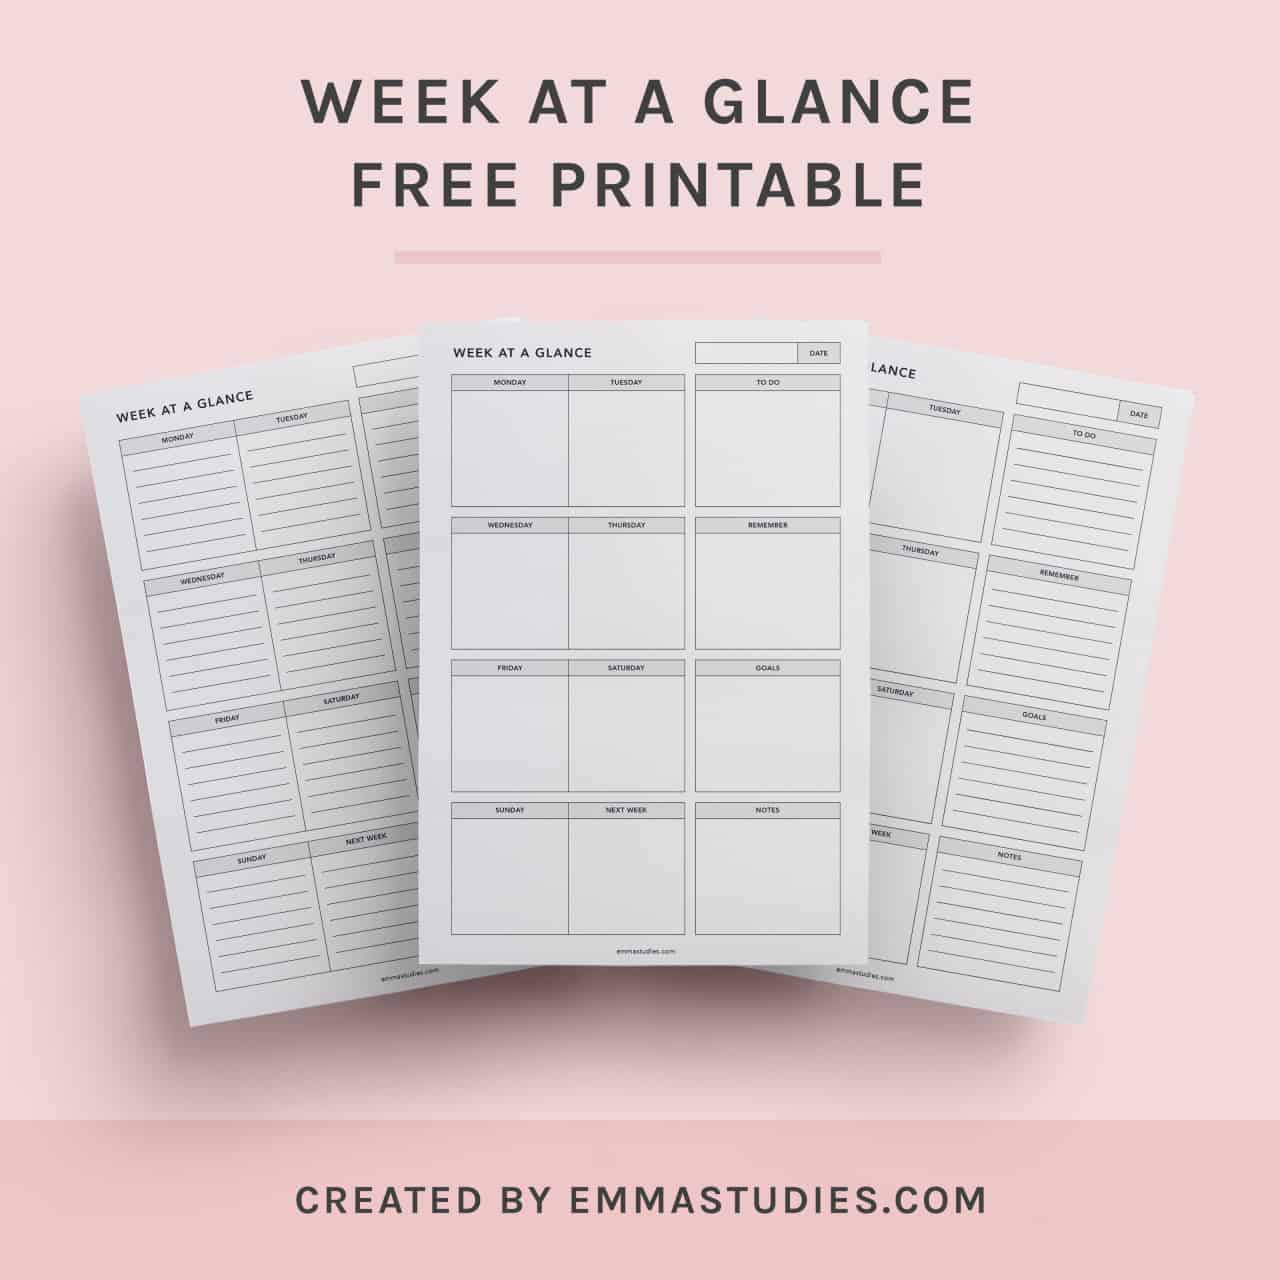 Week at a glance printable